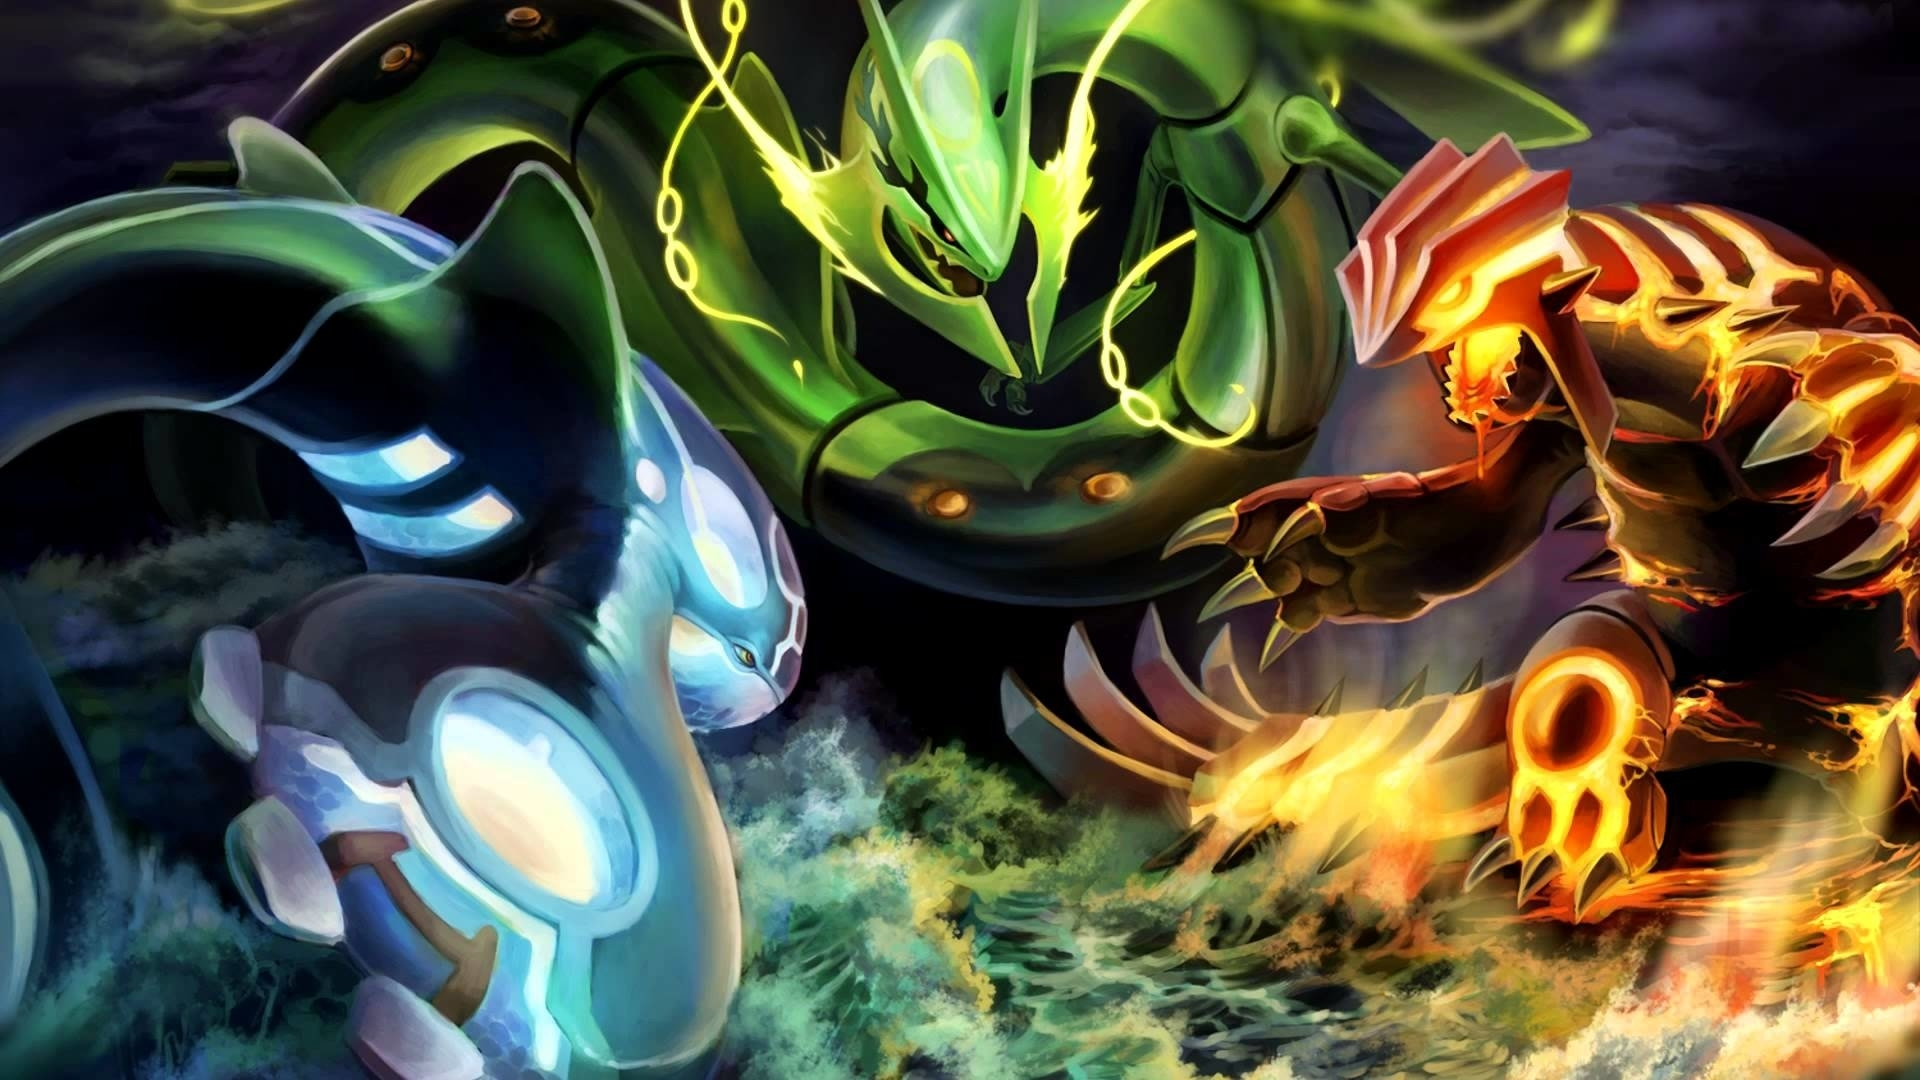 10 Latest Cool Legendary Pokemon Wallpapers FULL HD 1080p For PC Background